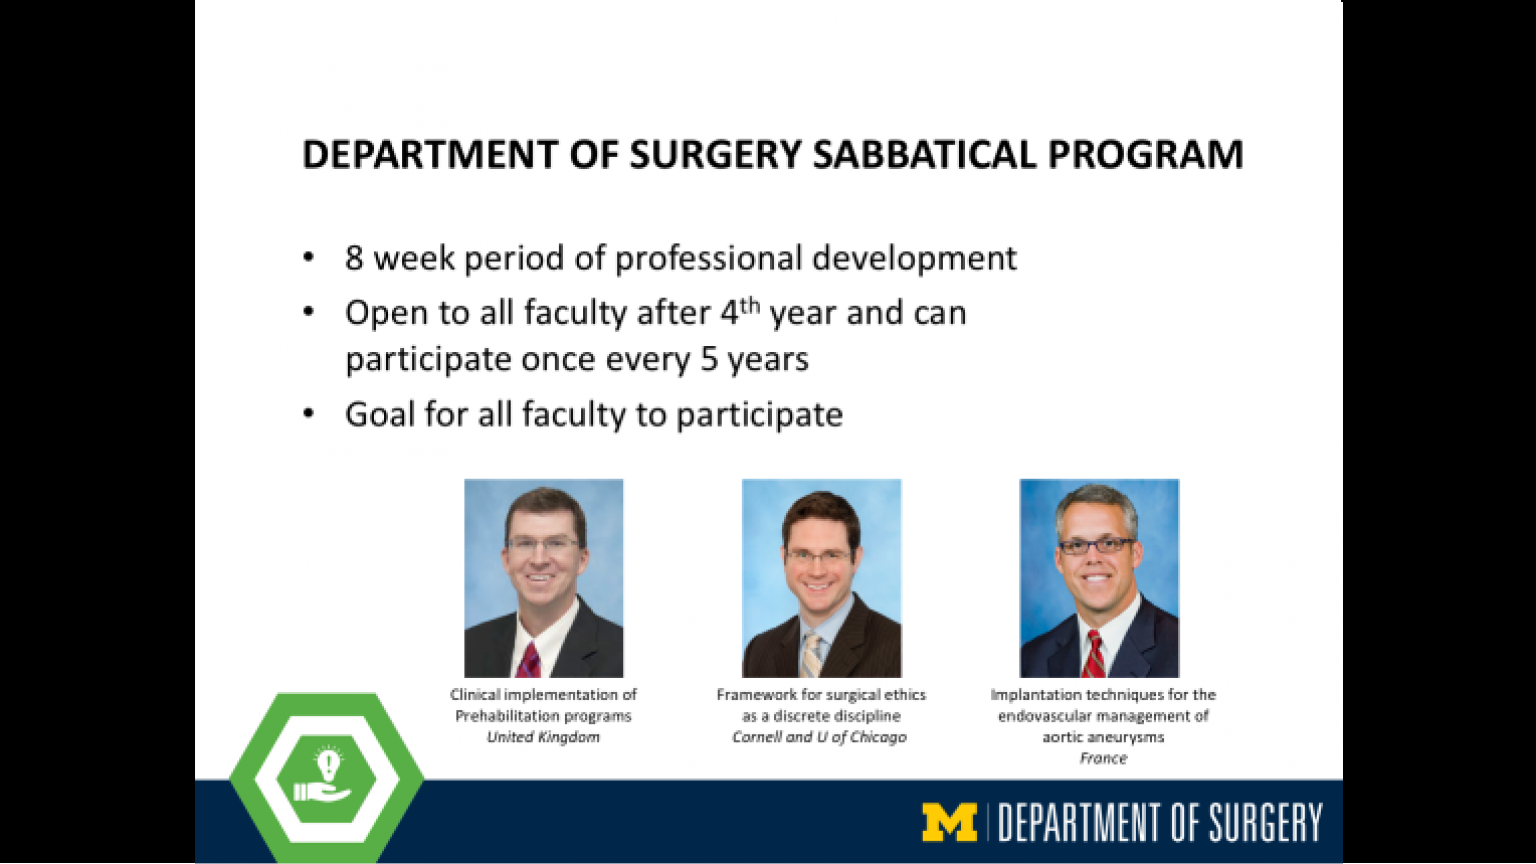 """Department of Surgery Sabbatical Program - thirty-second slide of """"This Is What We Stand For"""" presentation"""